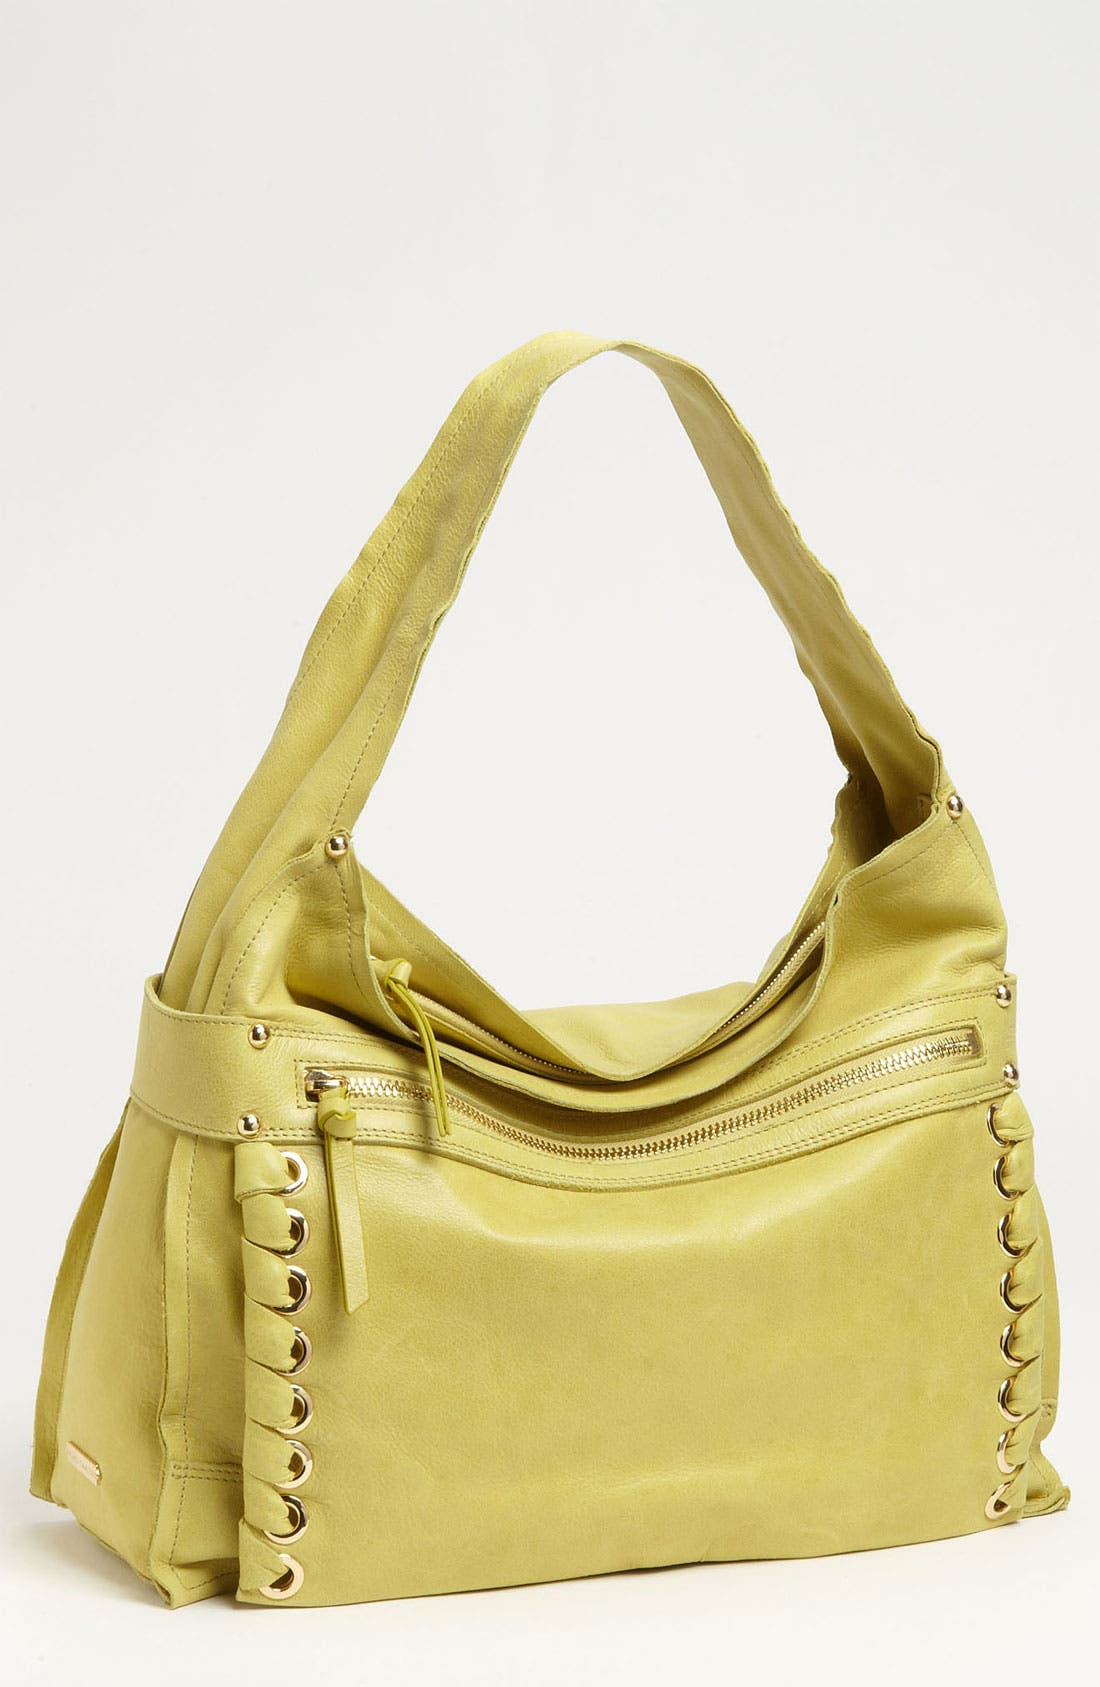 Alternate Image 1 Selected - Vince Camuto 'Mica' Leather Hobo